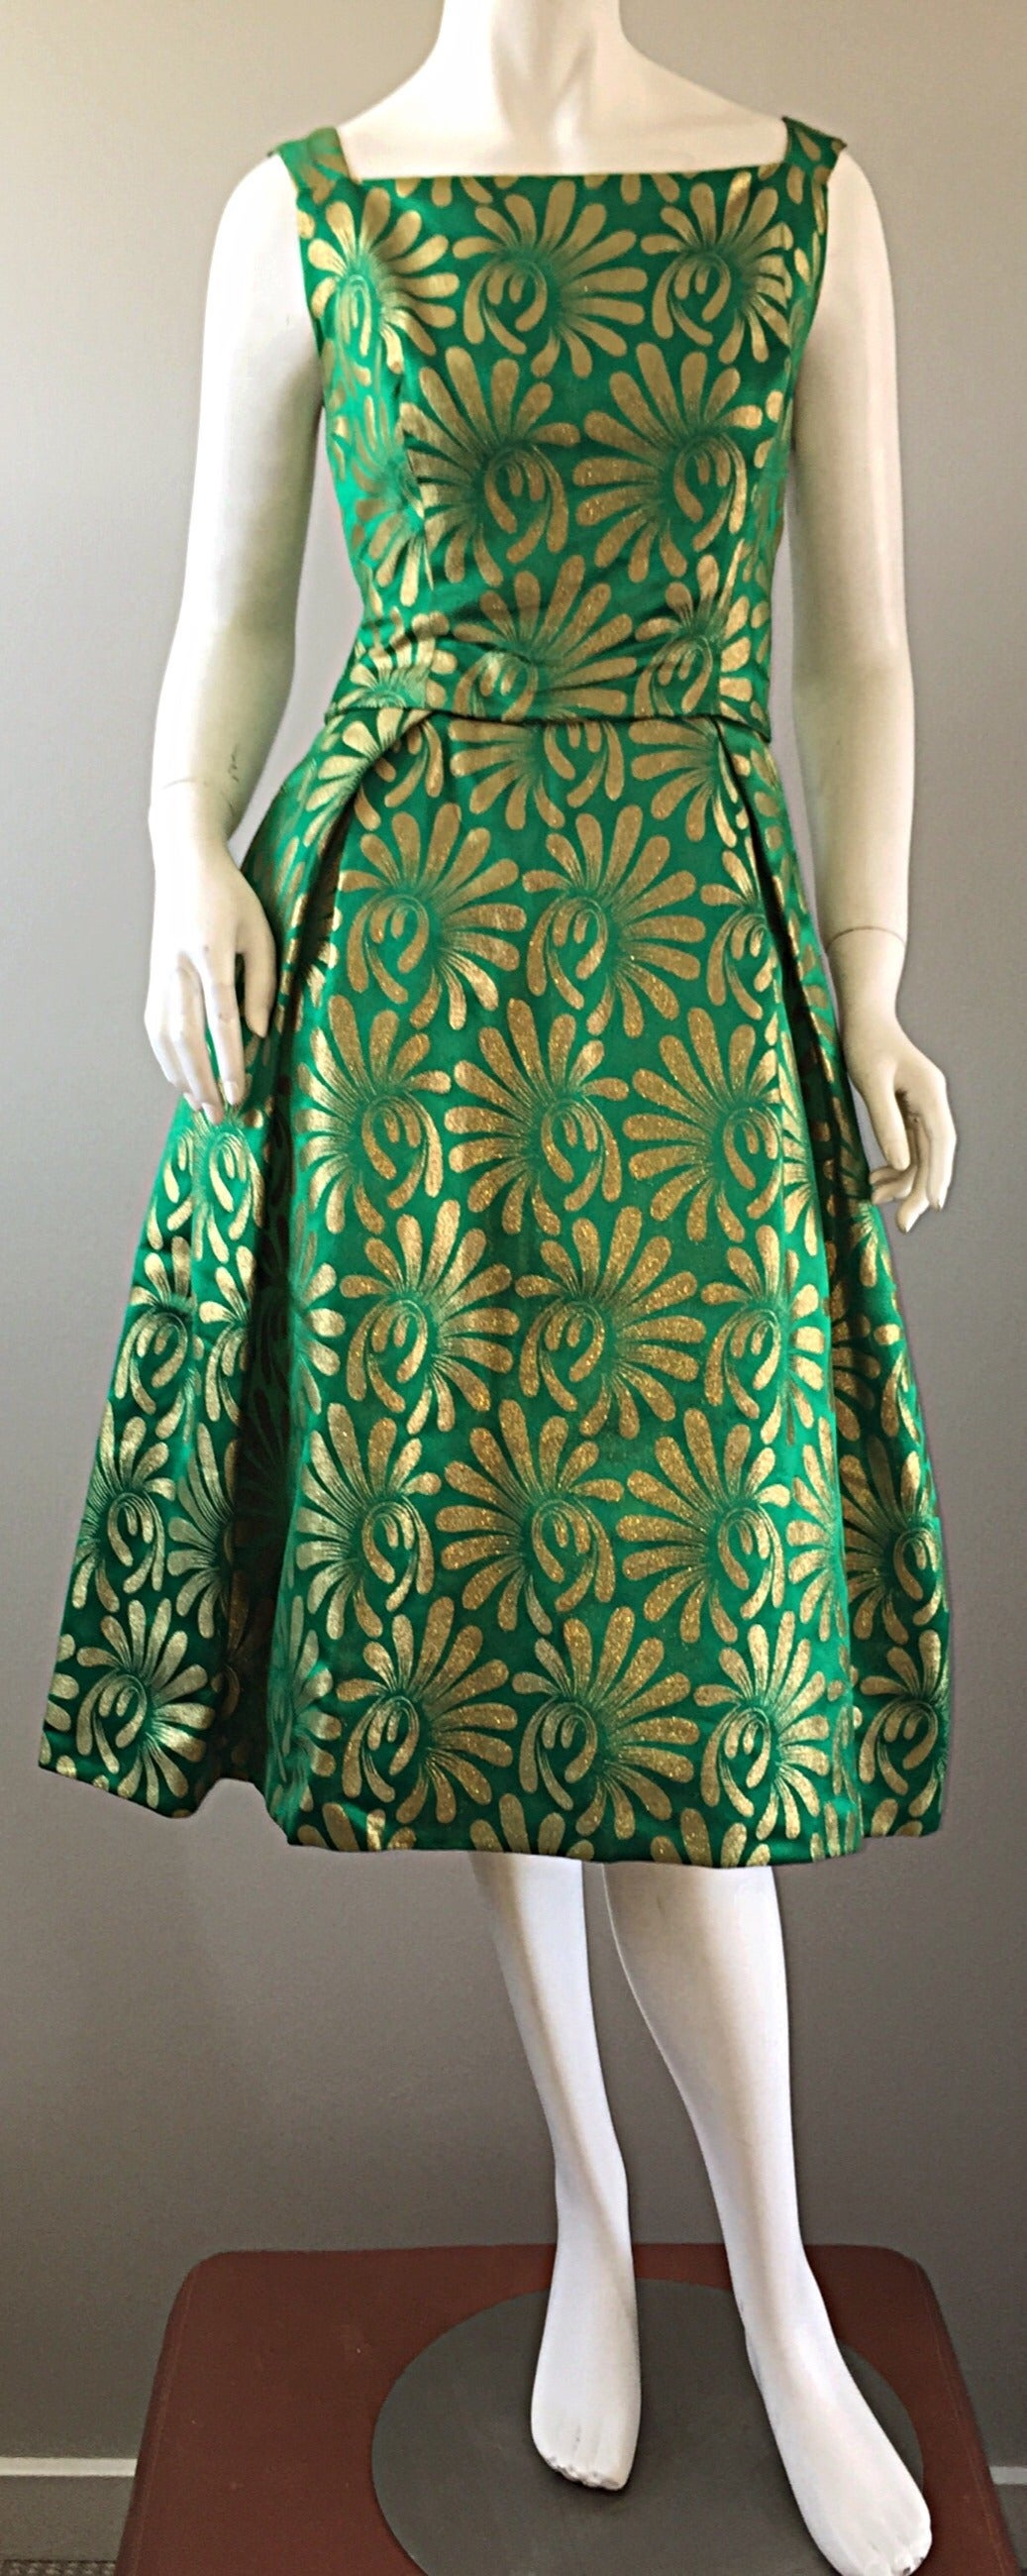 1950s 50s Vintage Blauner for Bonwit Teller Green + Gold ' New Look ' Silk Dress 2